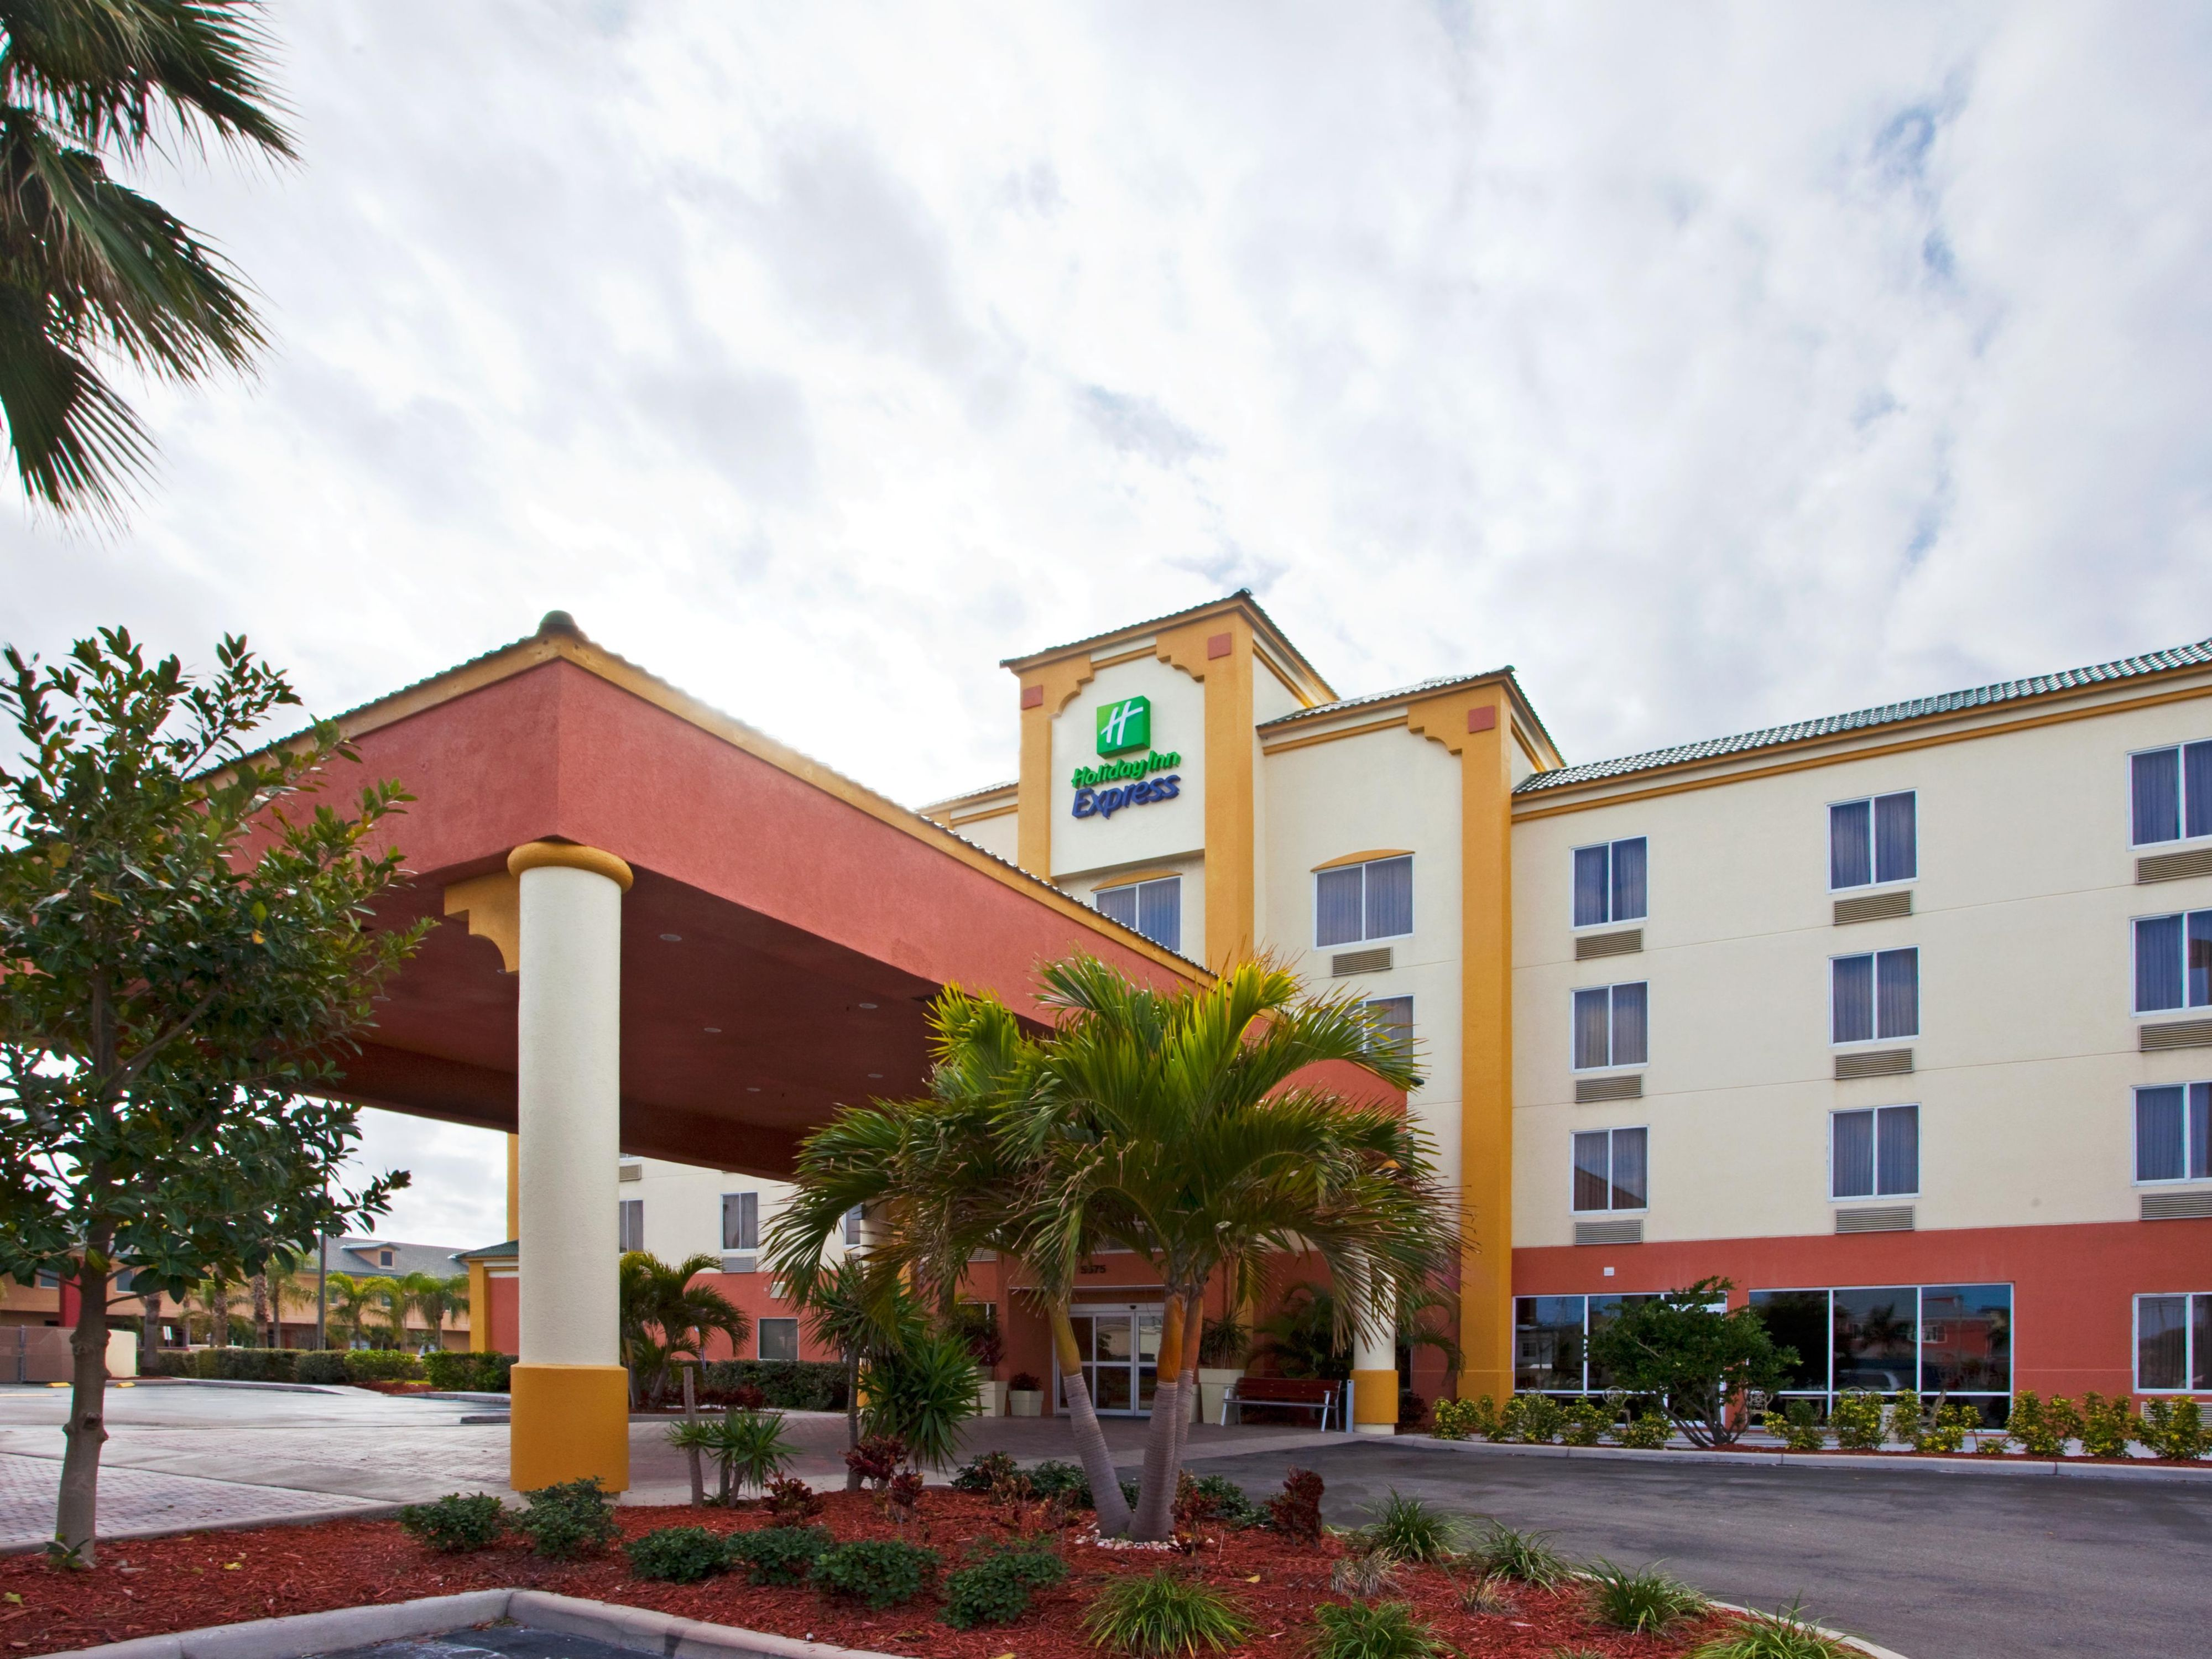 Hotel in Cocoa Beach, Florida - Holiday Inn Express & Suites on longboat key hotel map, klamath falls hotel map, daytona hotel map, mitchell hotel map, albany hotel map, pensacola hotel map, overland park hotel map, ann arbor hotel map, jacksonville hotel map, georgetown hotel map, wichita hotel map, orange county convention center hotel map, punta gorda hotel map, kent hotel map, boca raton hotel map, gulfport hotel map, geneva hotel map, kalamazoo hotel map, edgewater hotel map, davenport hotel map,